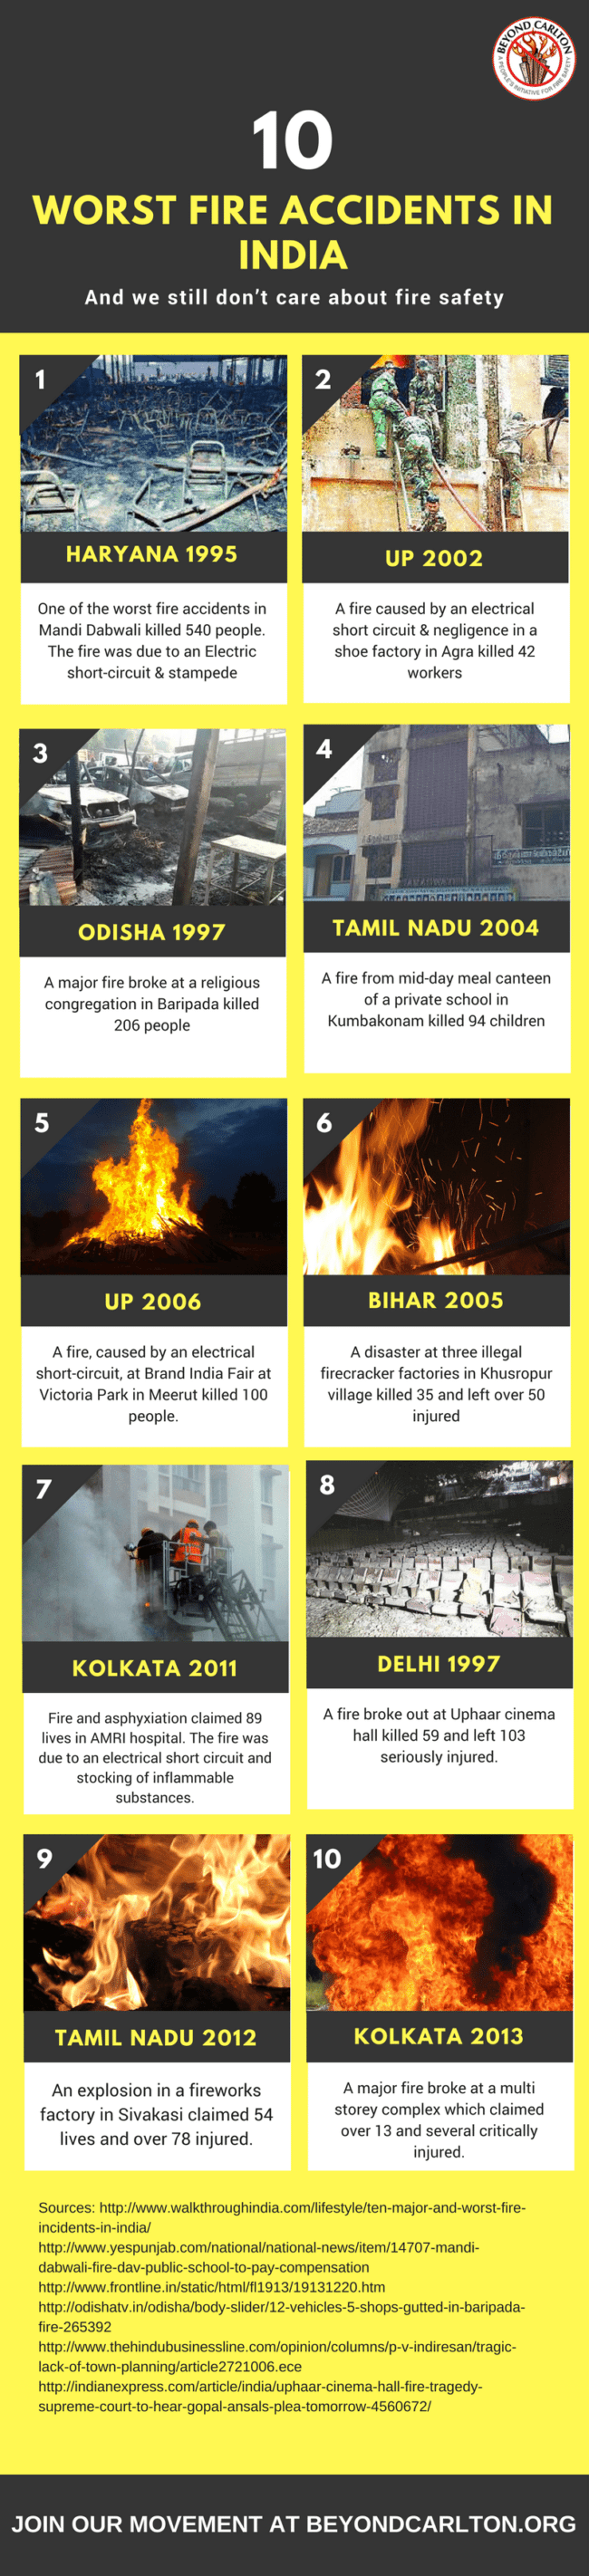 10worst-fire-accidents9.1-1-e1518757079681.png